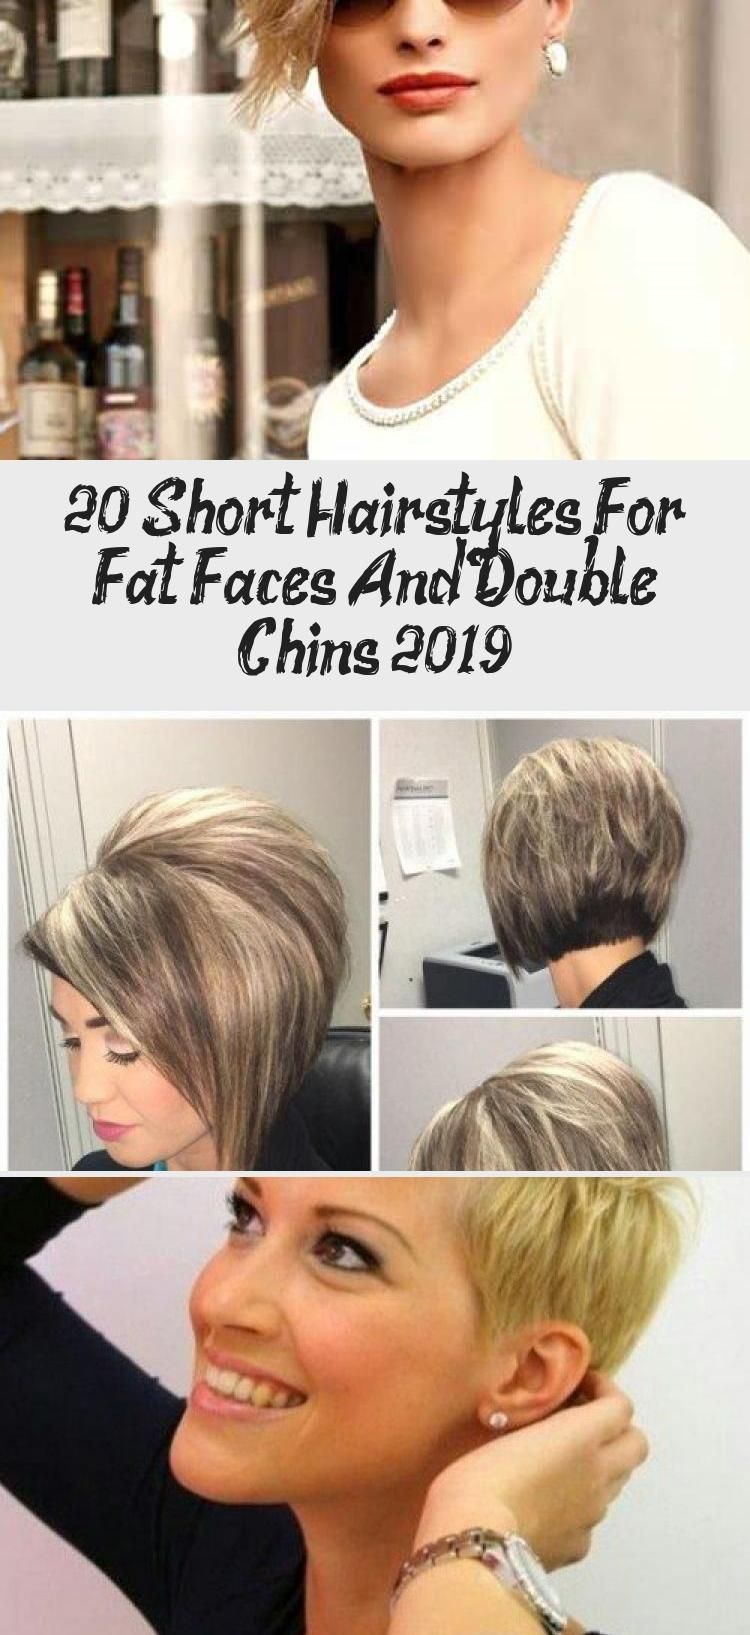 Pin on Hairstyles for Round Faces